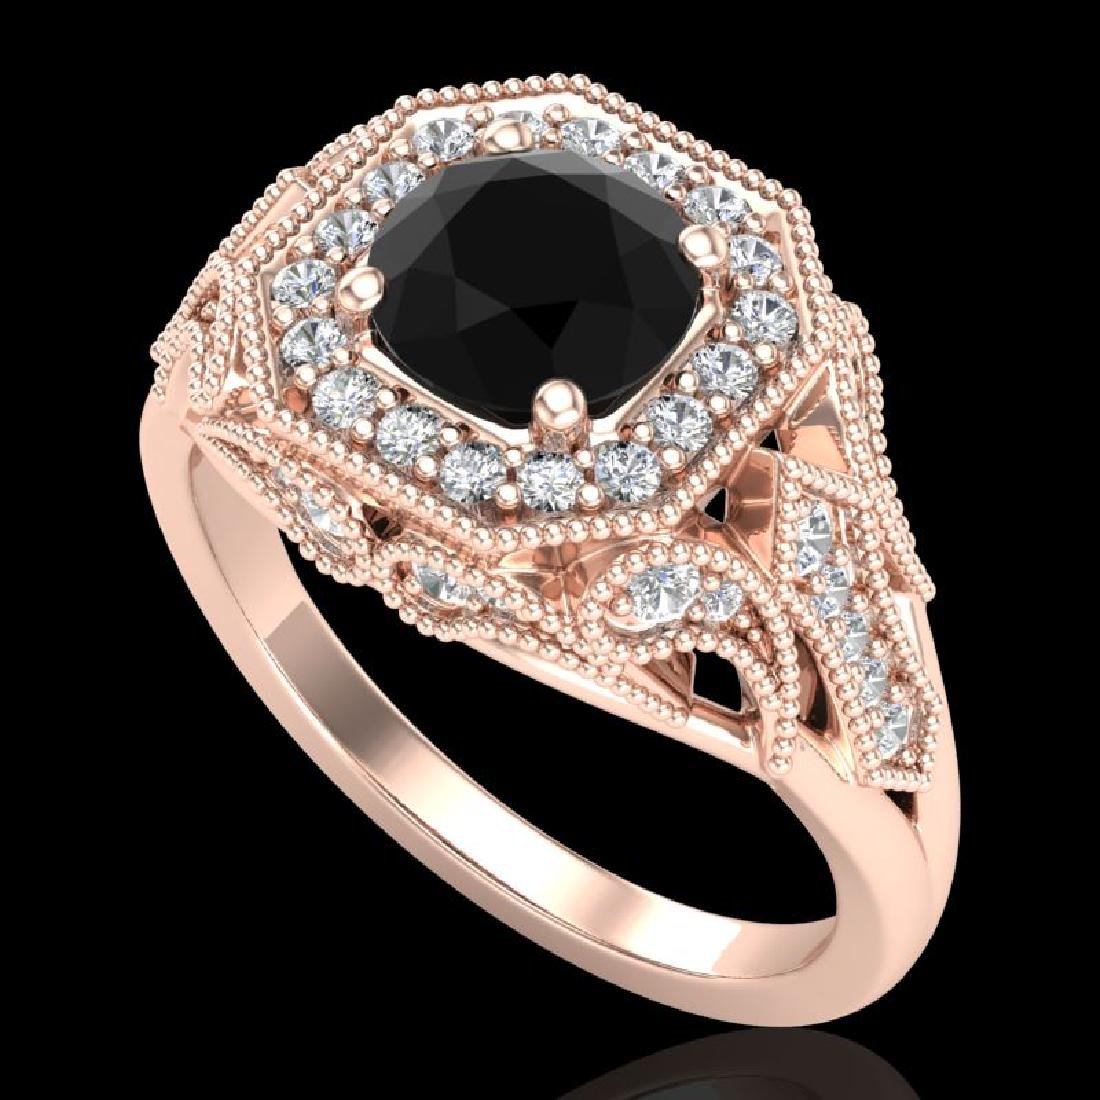 1.75 CTW Fancy Black Diamond Solitaire Engagement Art